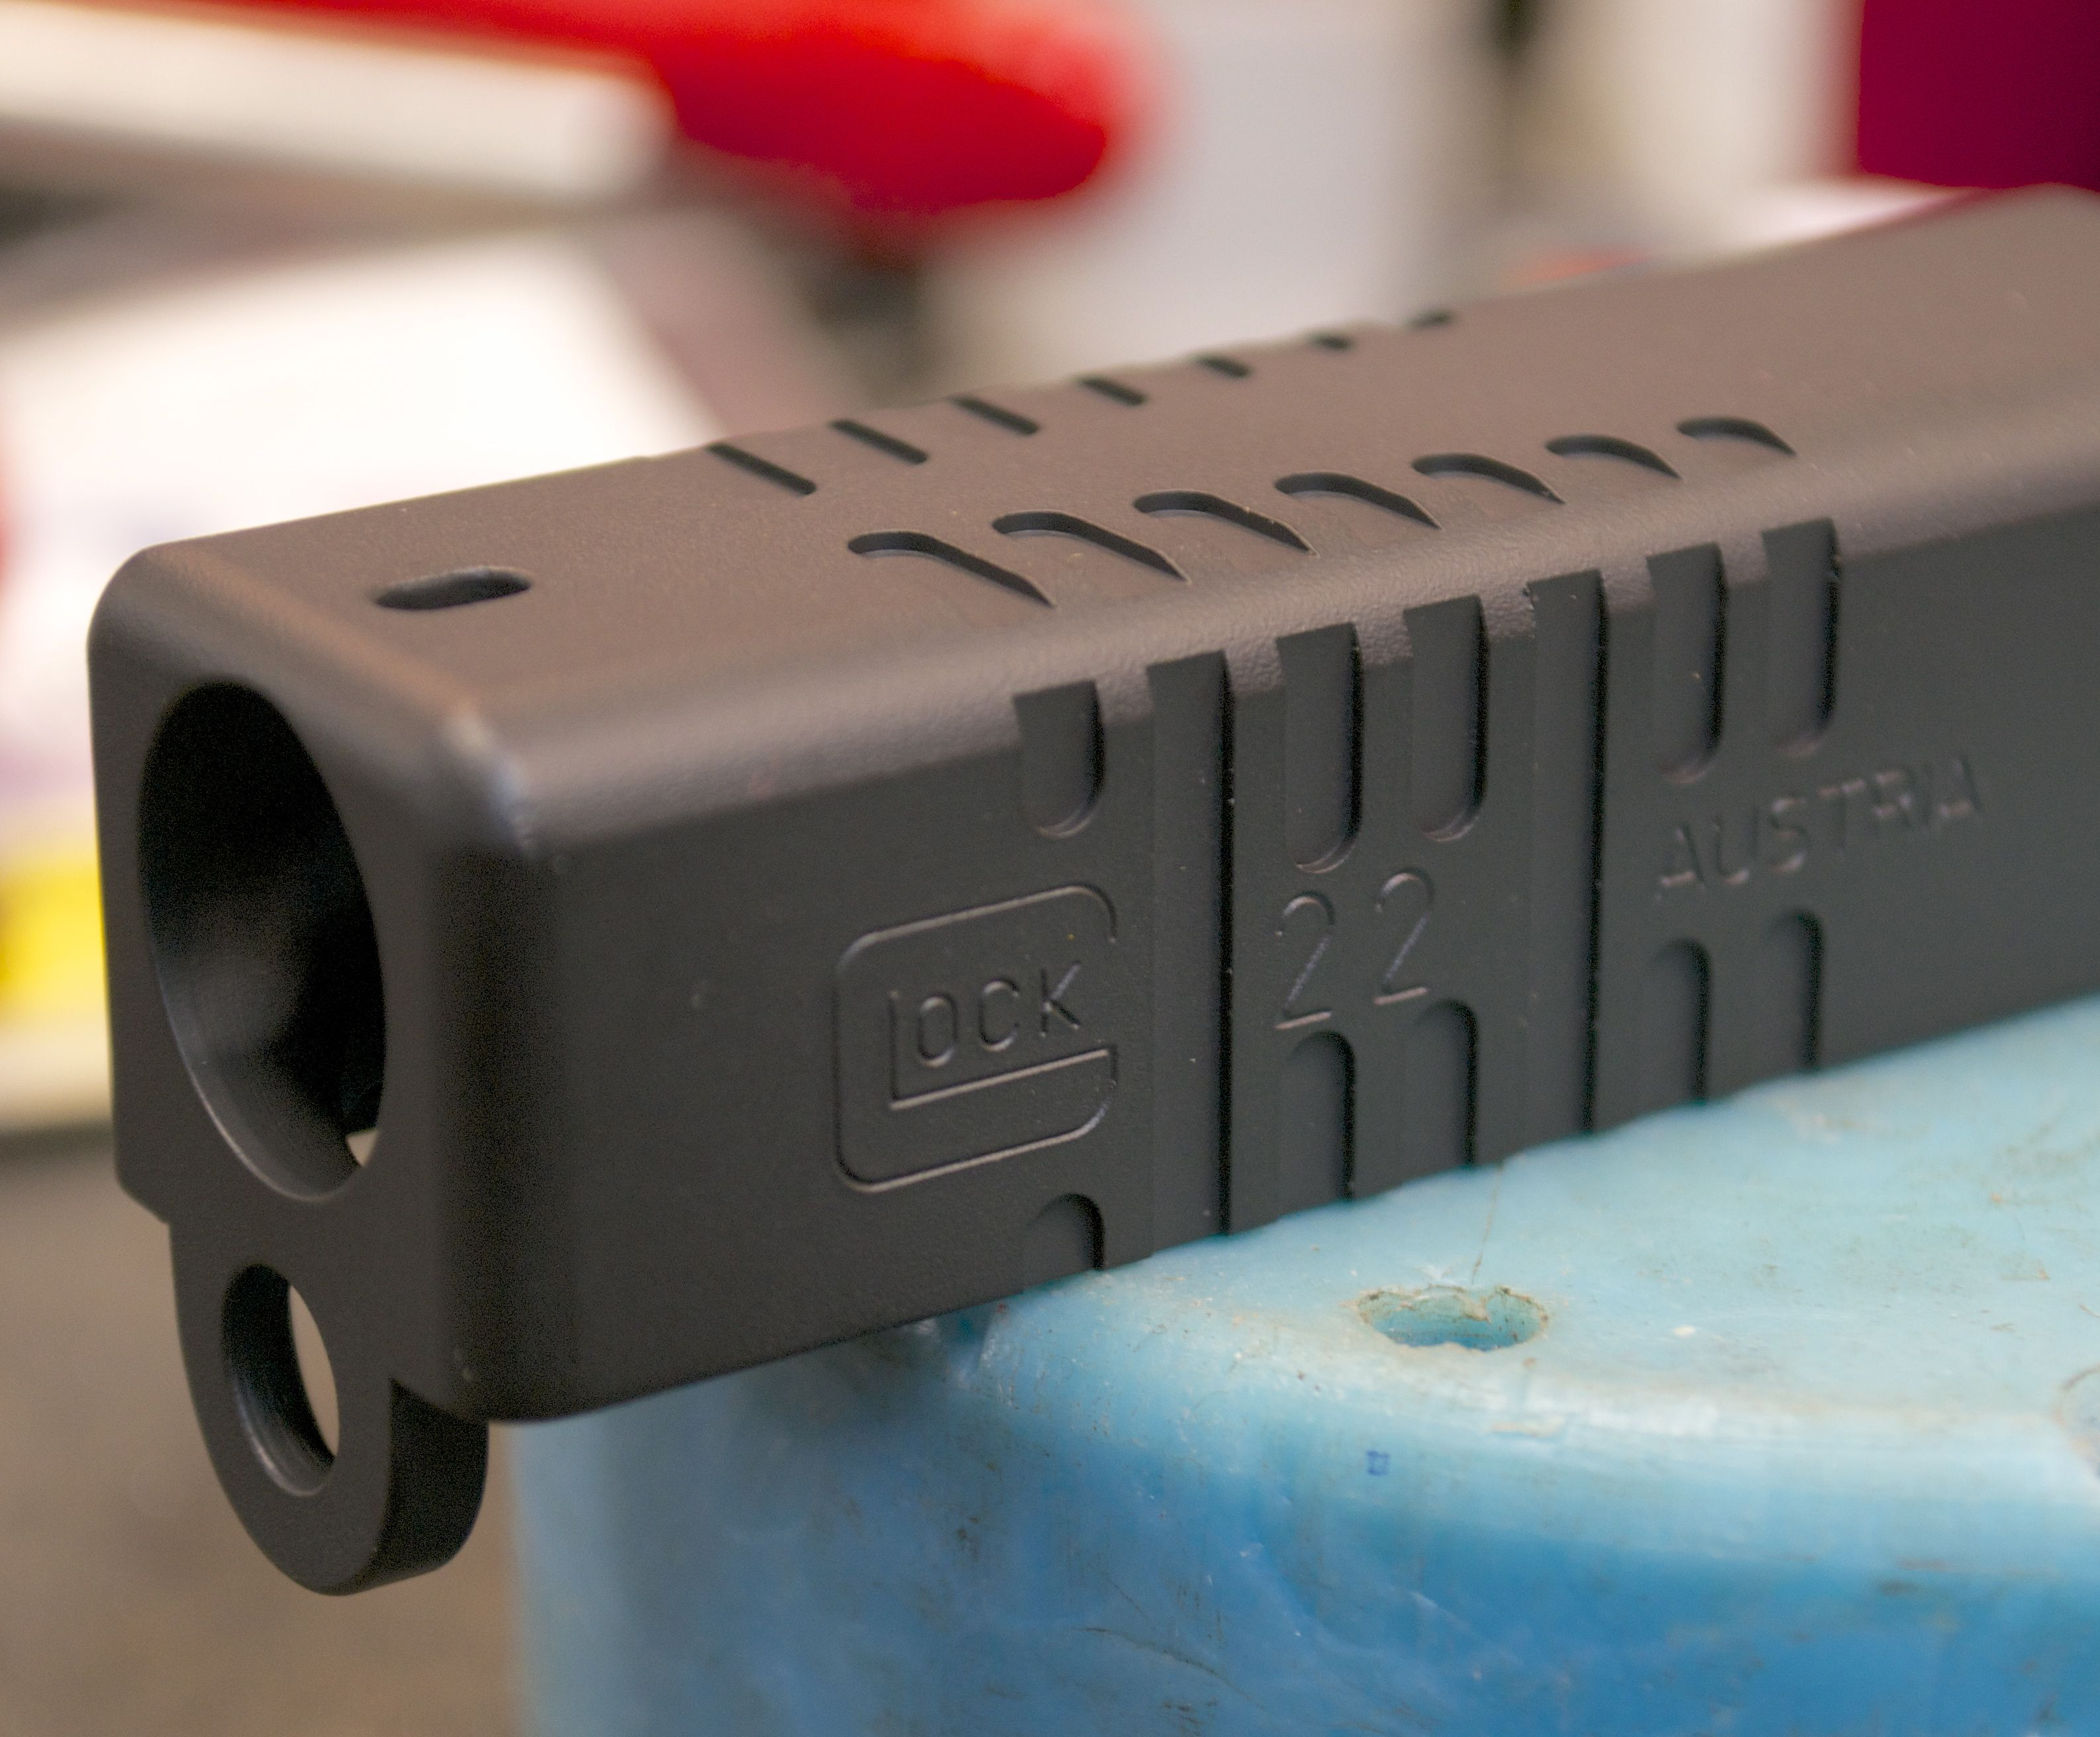 Machining front cocking serrations on a Glock slide – rifleshooter com